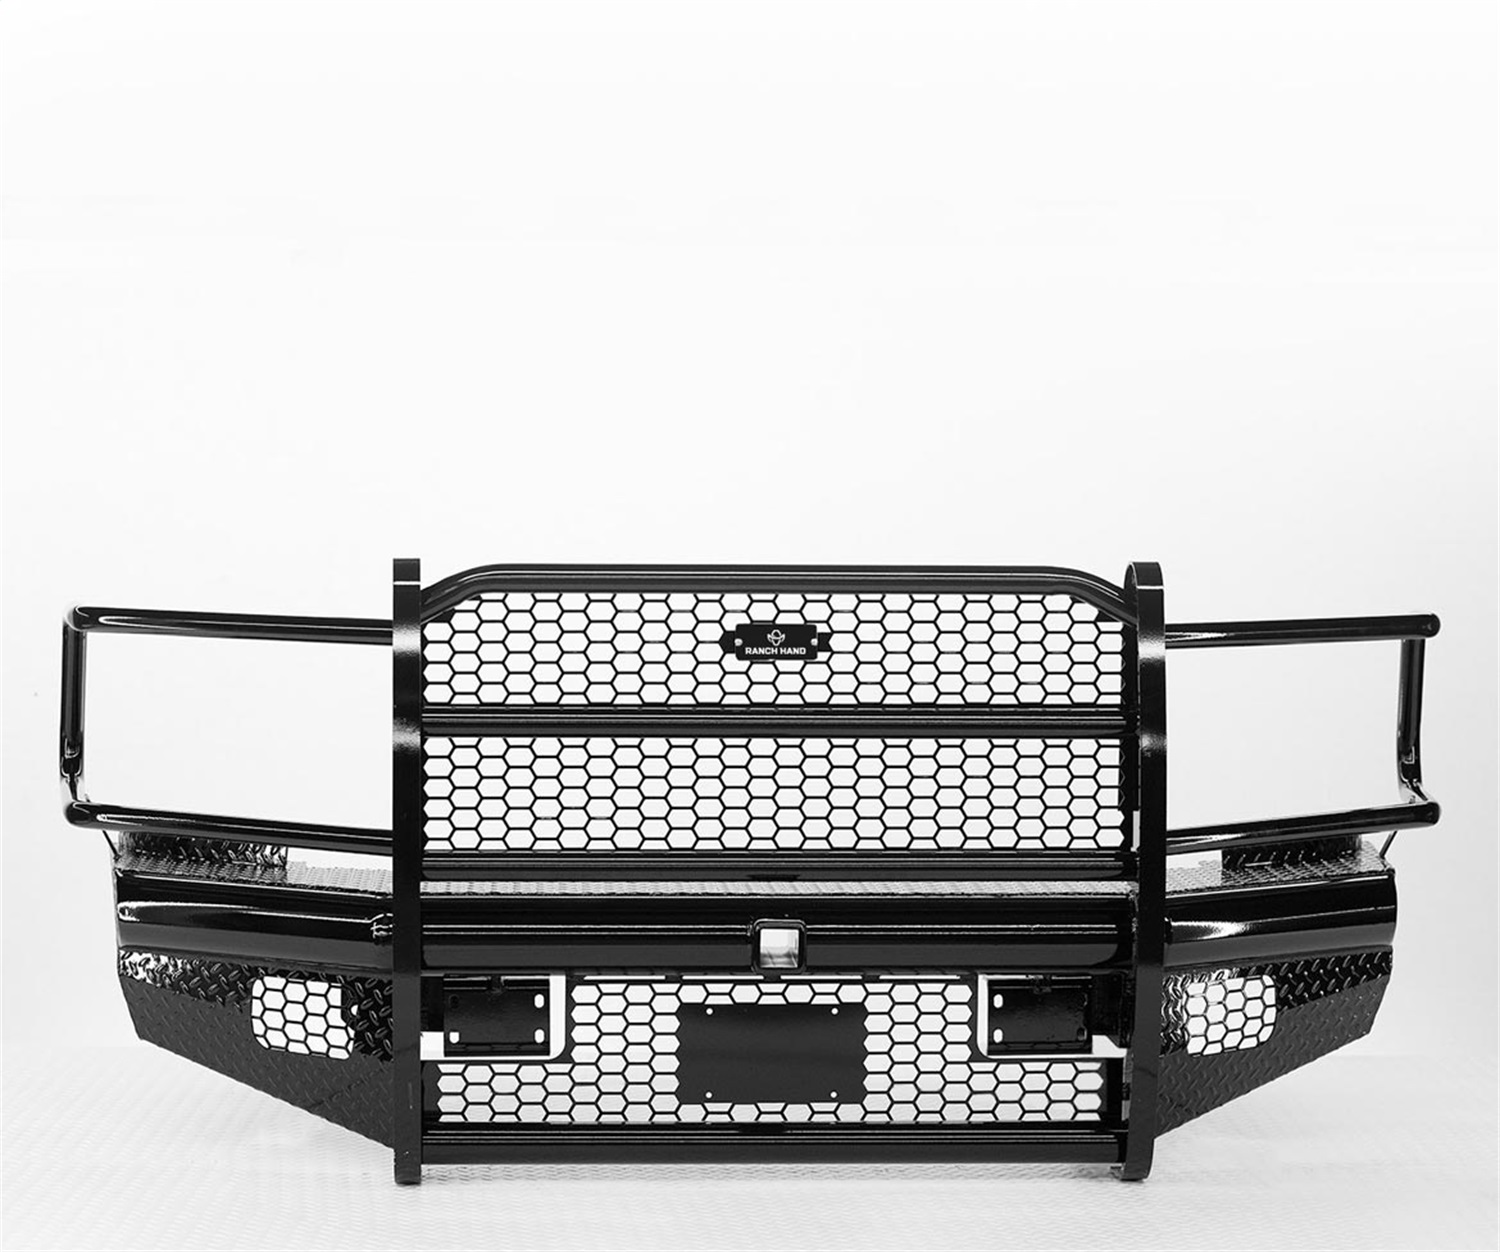 Legend Series Front Bumper, Retains Factory Tow Hooks And Factory Fog Lights